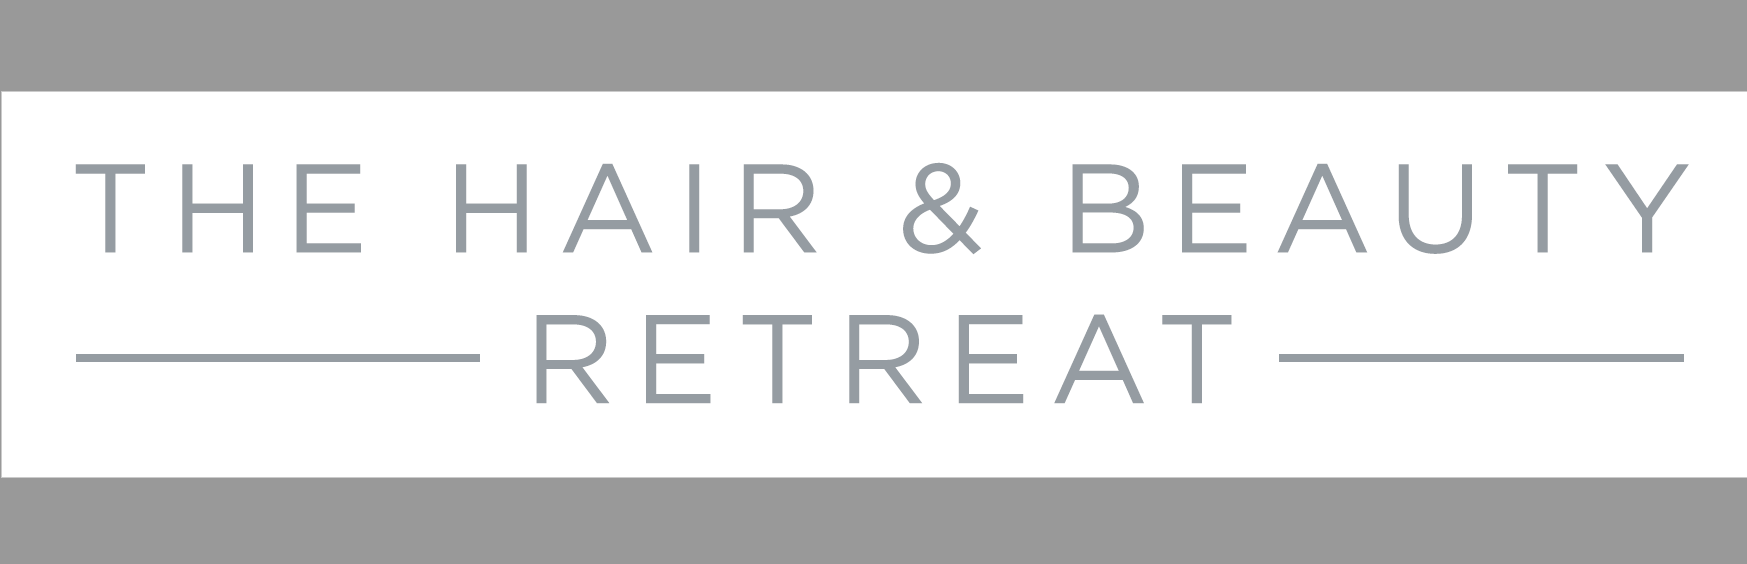 The Hair & Beauty Retreat